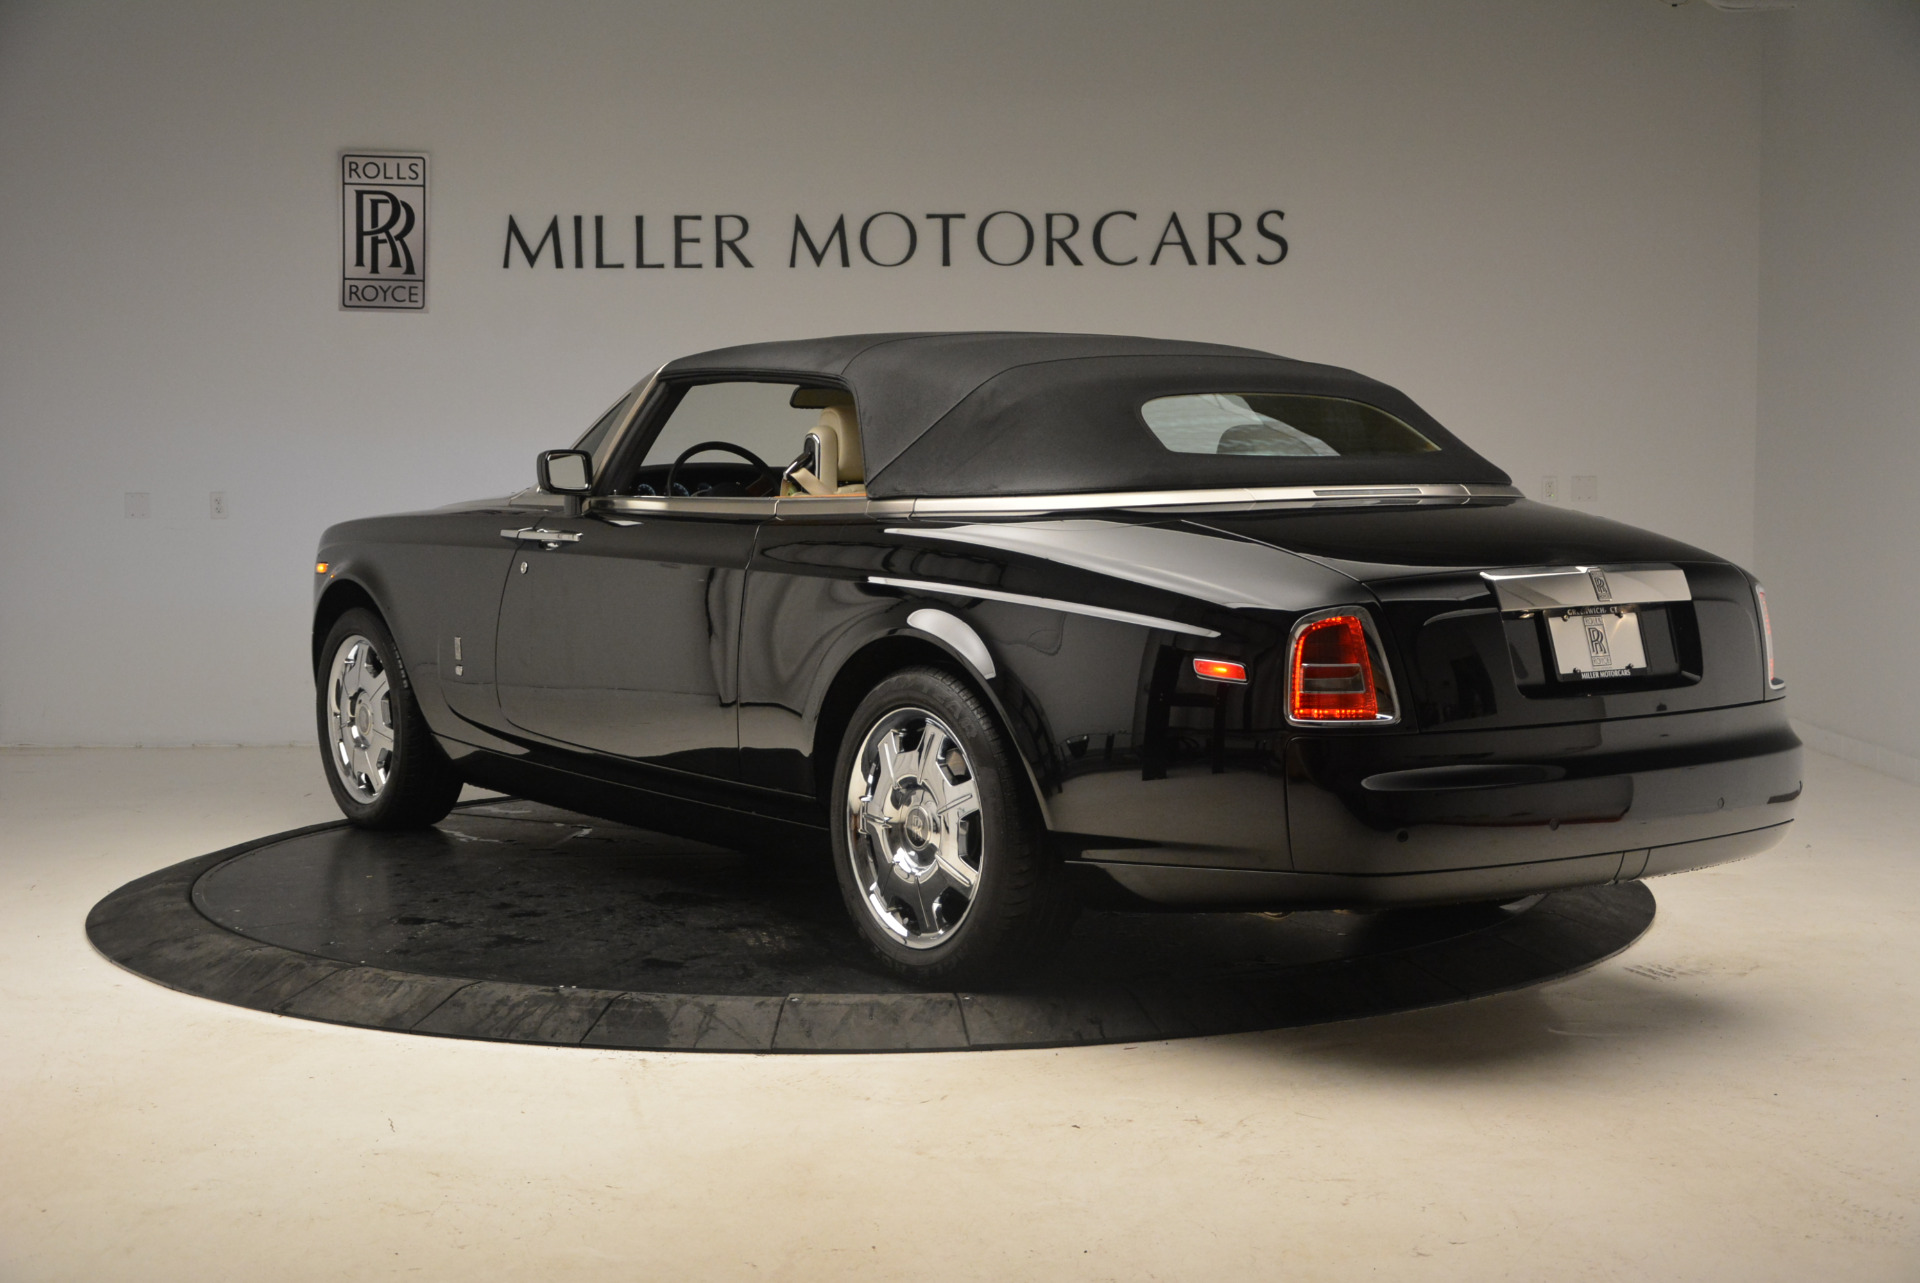 Used 2009 Rolls-Royce Phantom Drophead Coupe  For Sale In Greenwich, CT 1792_p17